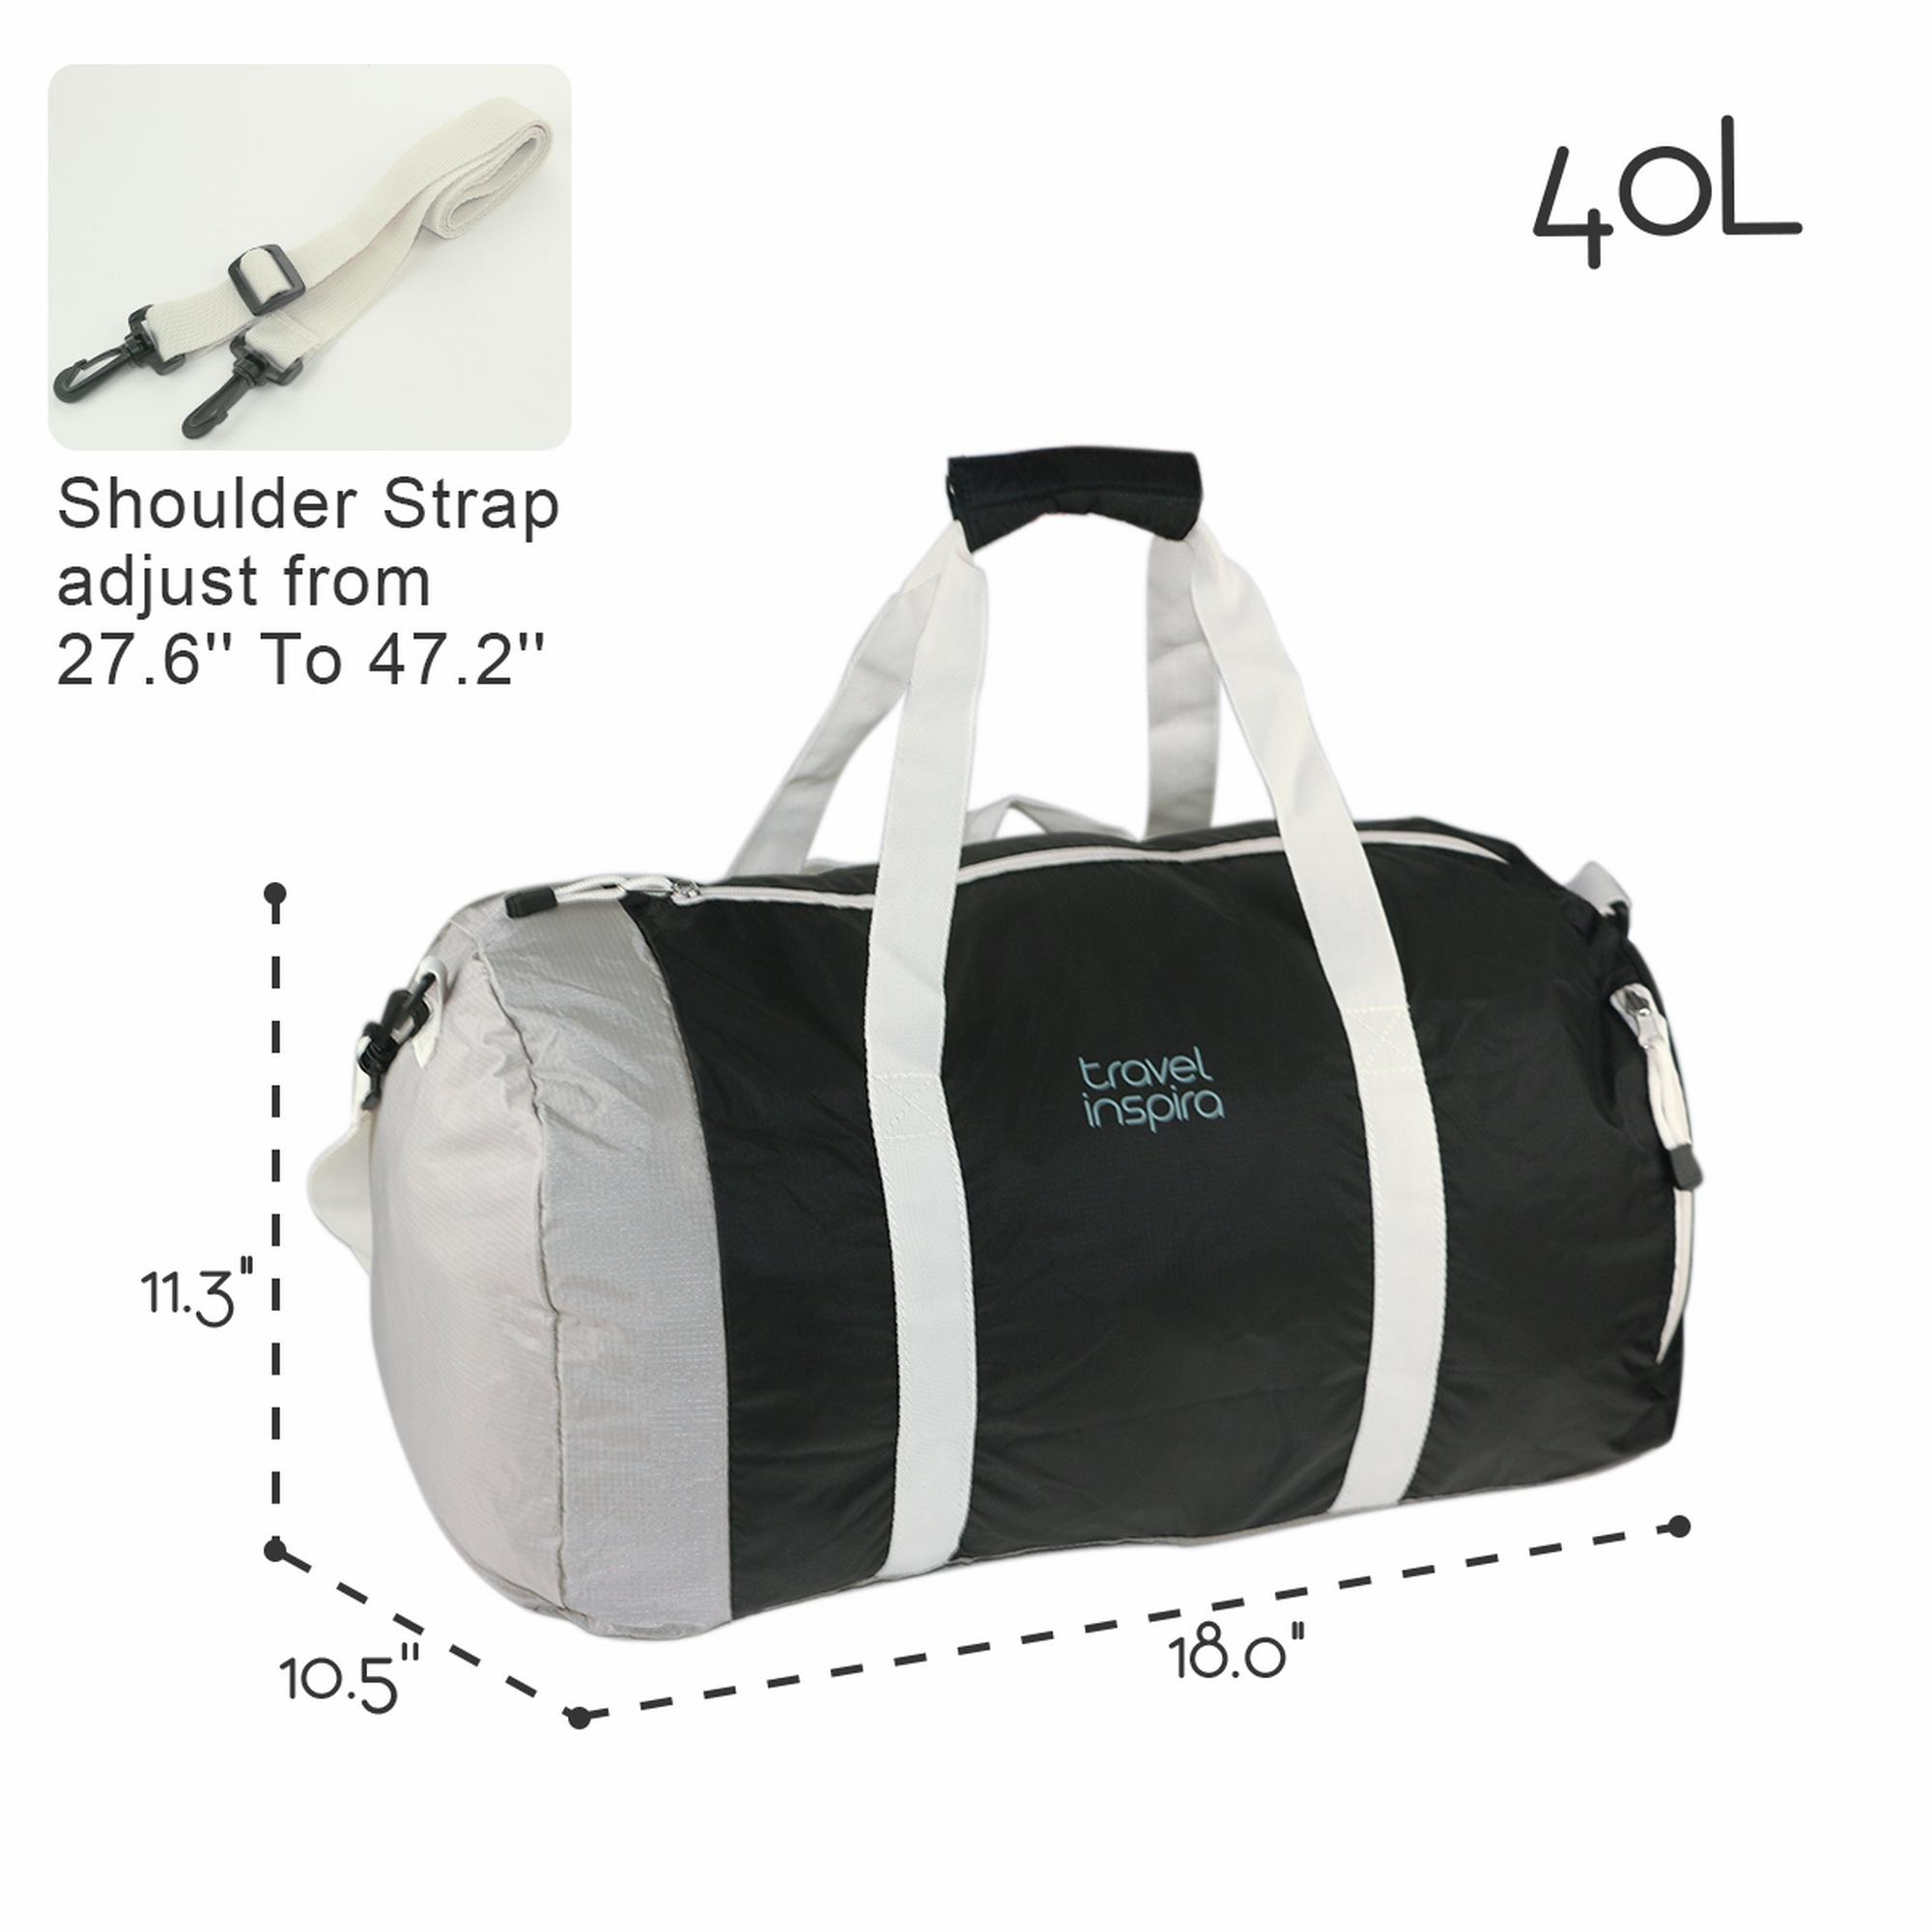 Foldable Waterproof Travel Luggage Duffle Bag Lightweight for Sports, Gym, Vacation and Travel Duffel Bags (40L, Black)